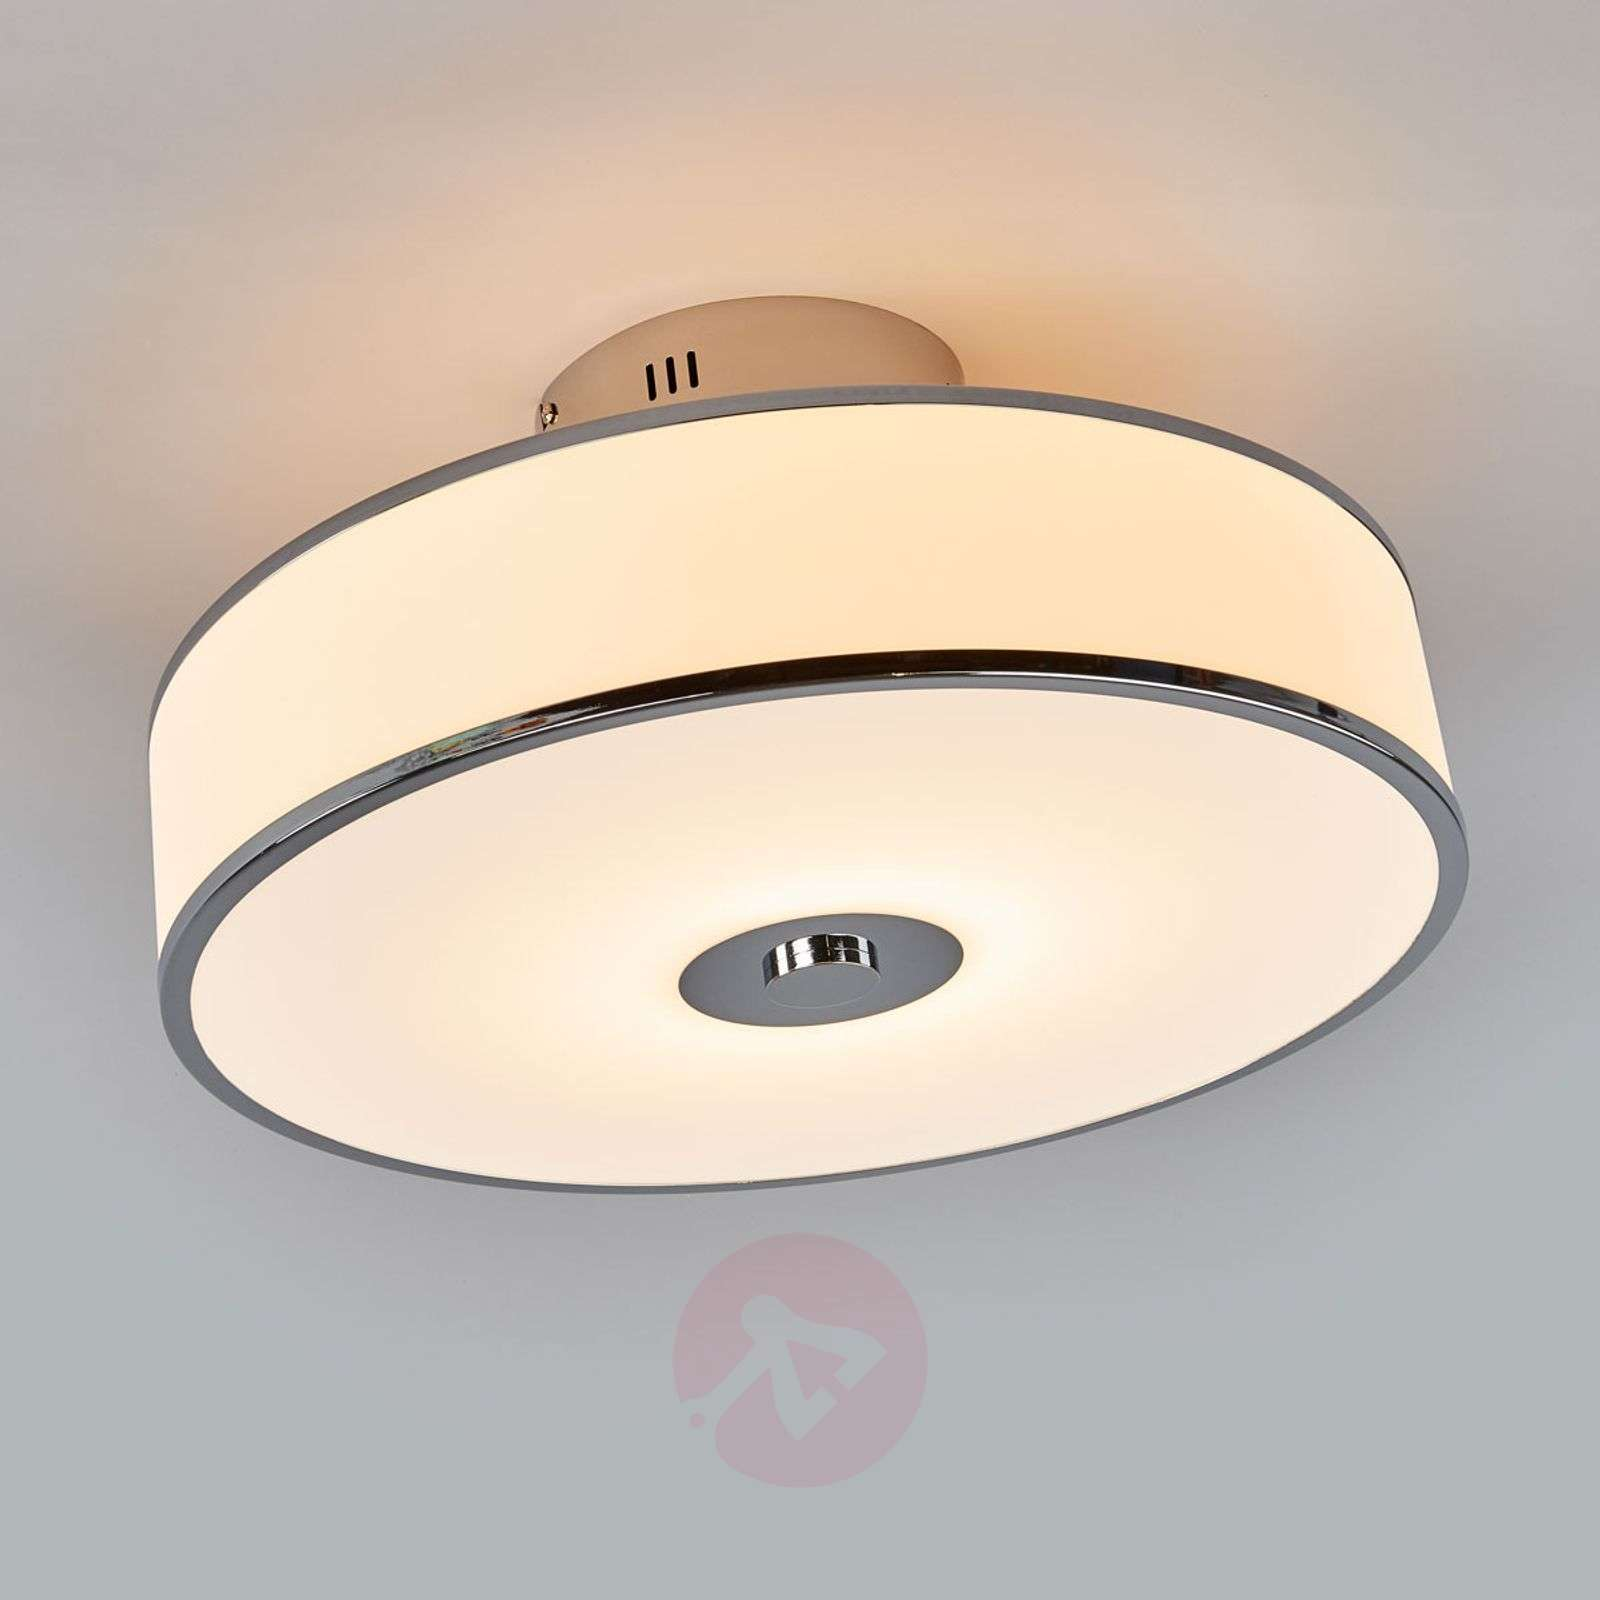 Dimmable LED Ceiling Lamp Lounge In White/chrome 8507921 02 ...